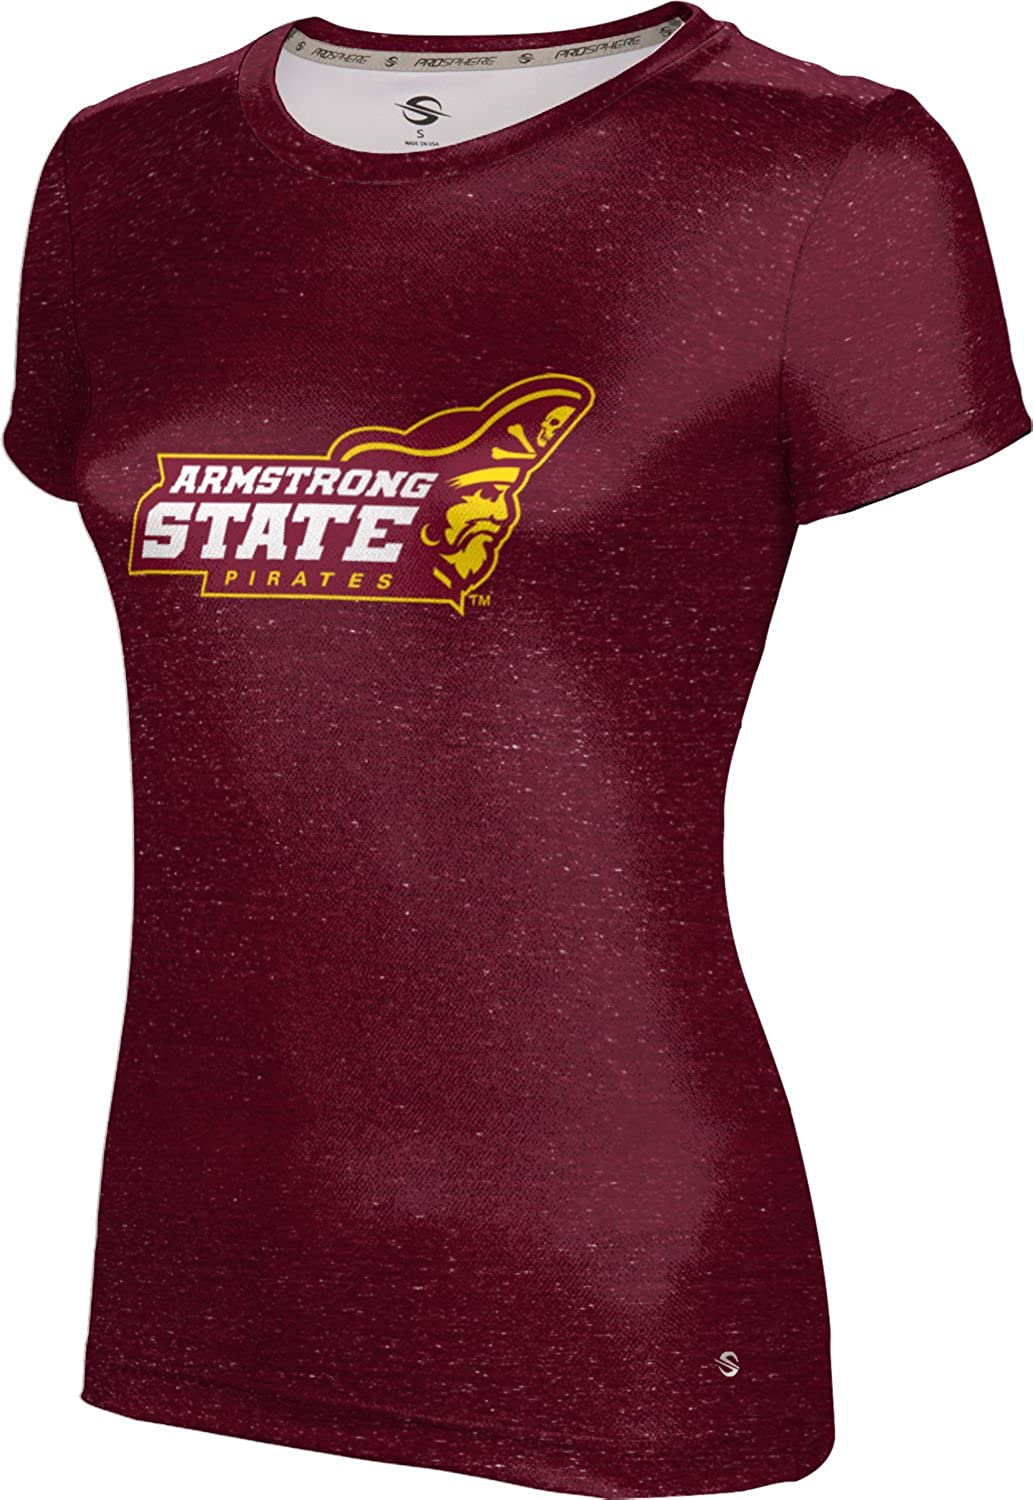 ProSphere Armstrong State University Girls' Performance T-Shirt (Heather)